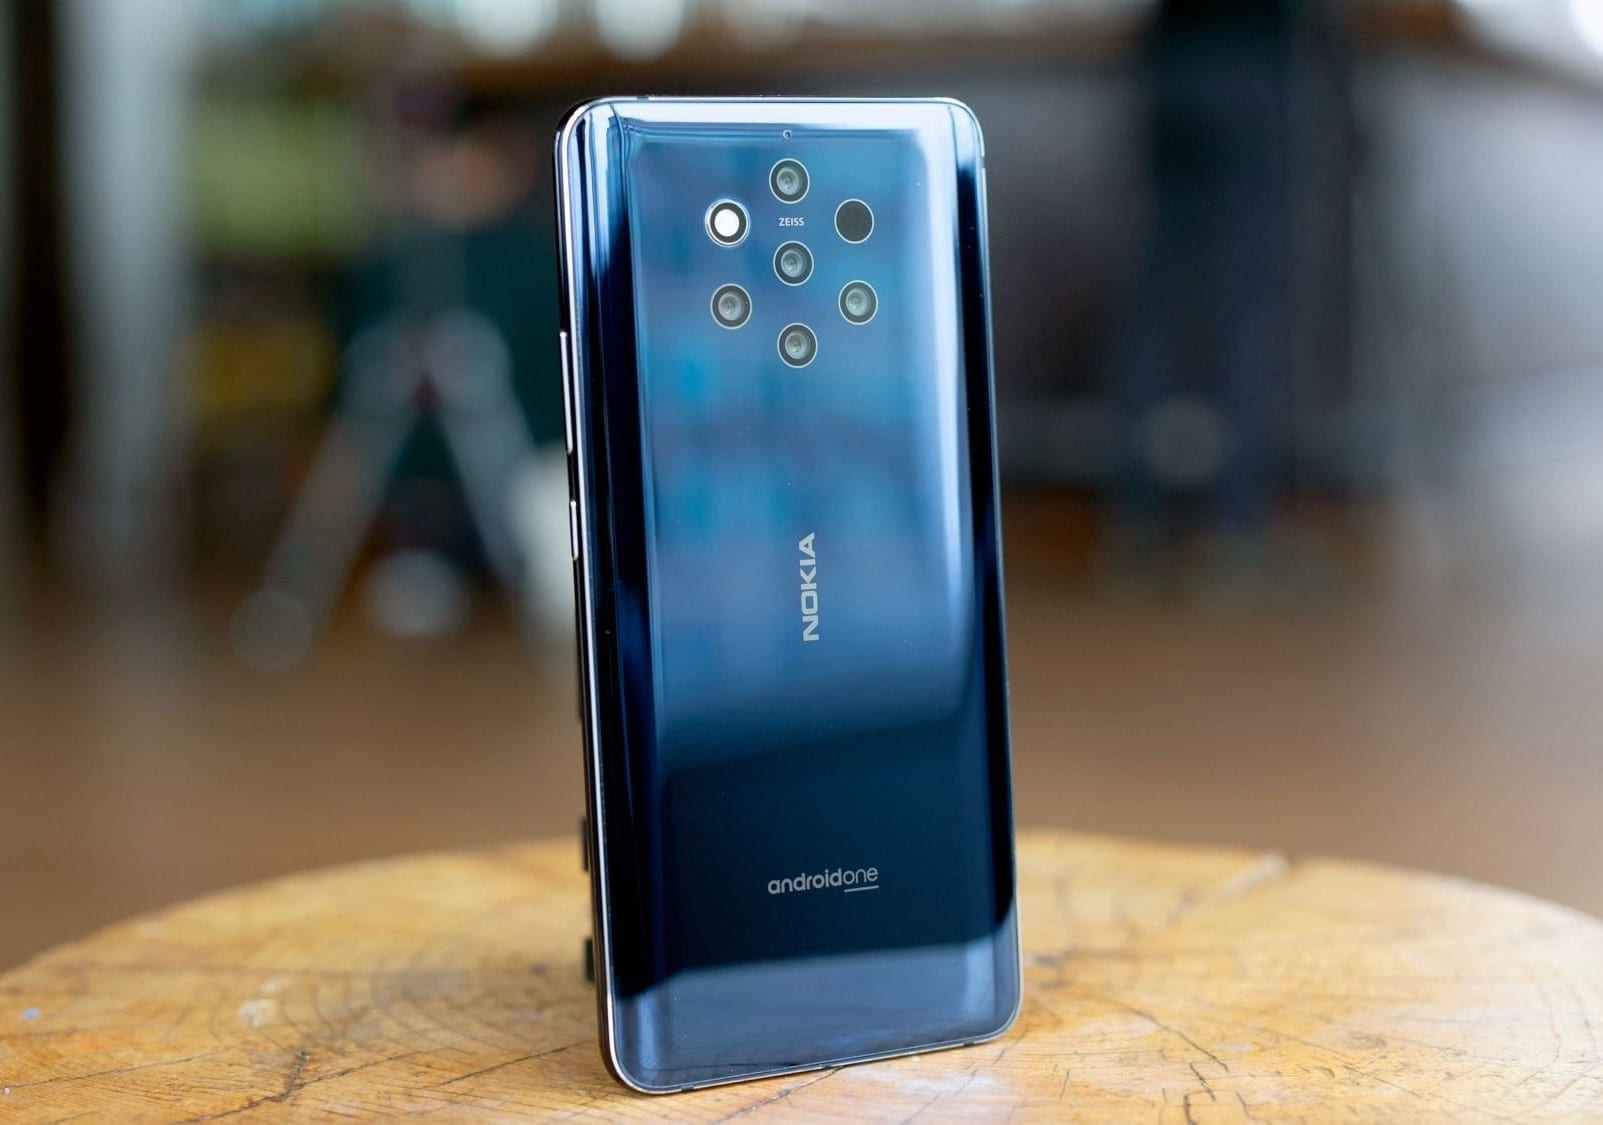 Nokia 9 Pure View: Specifications with 5 Lens Camera & Review